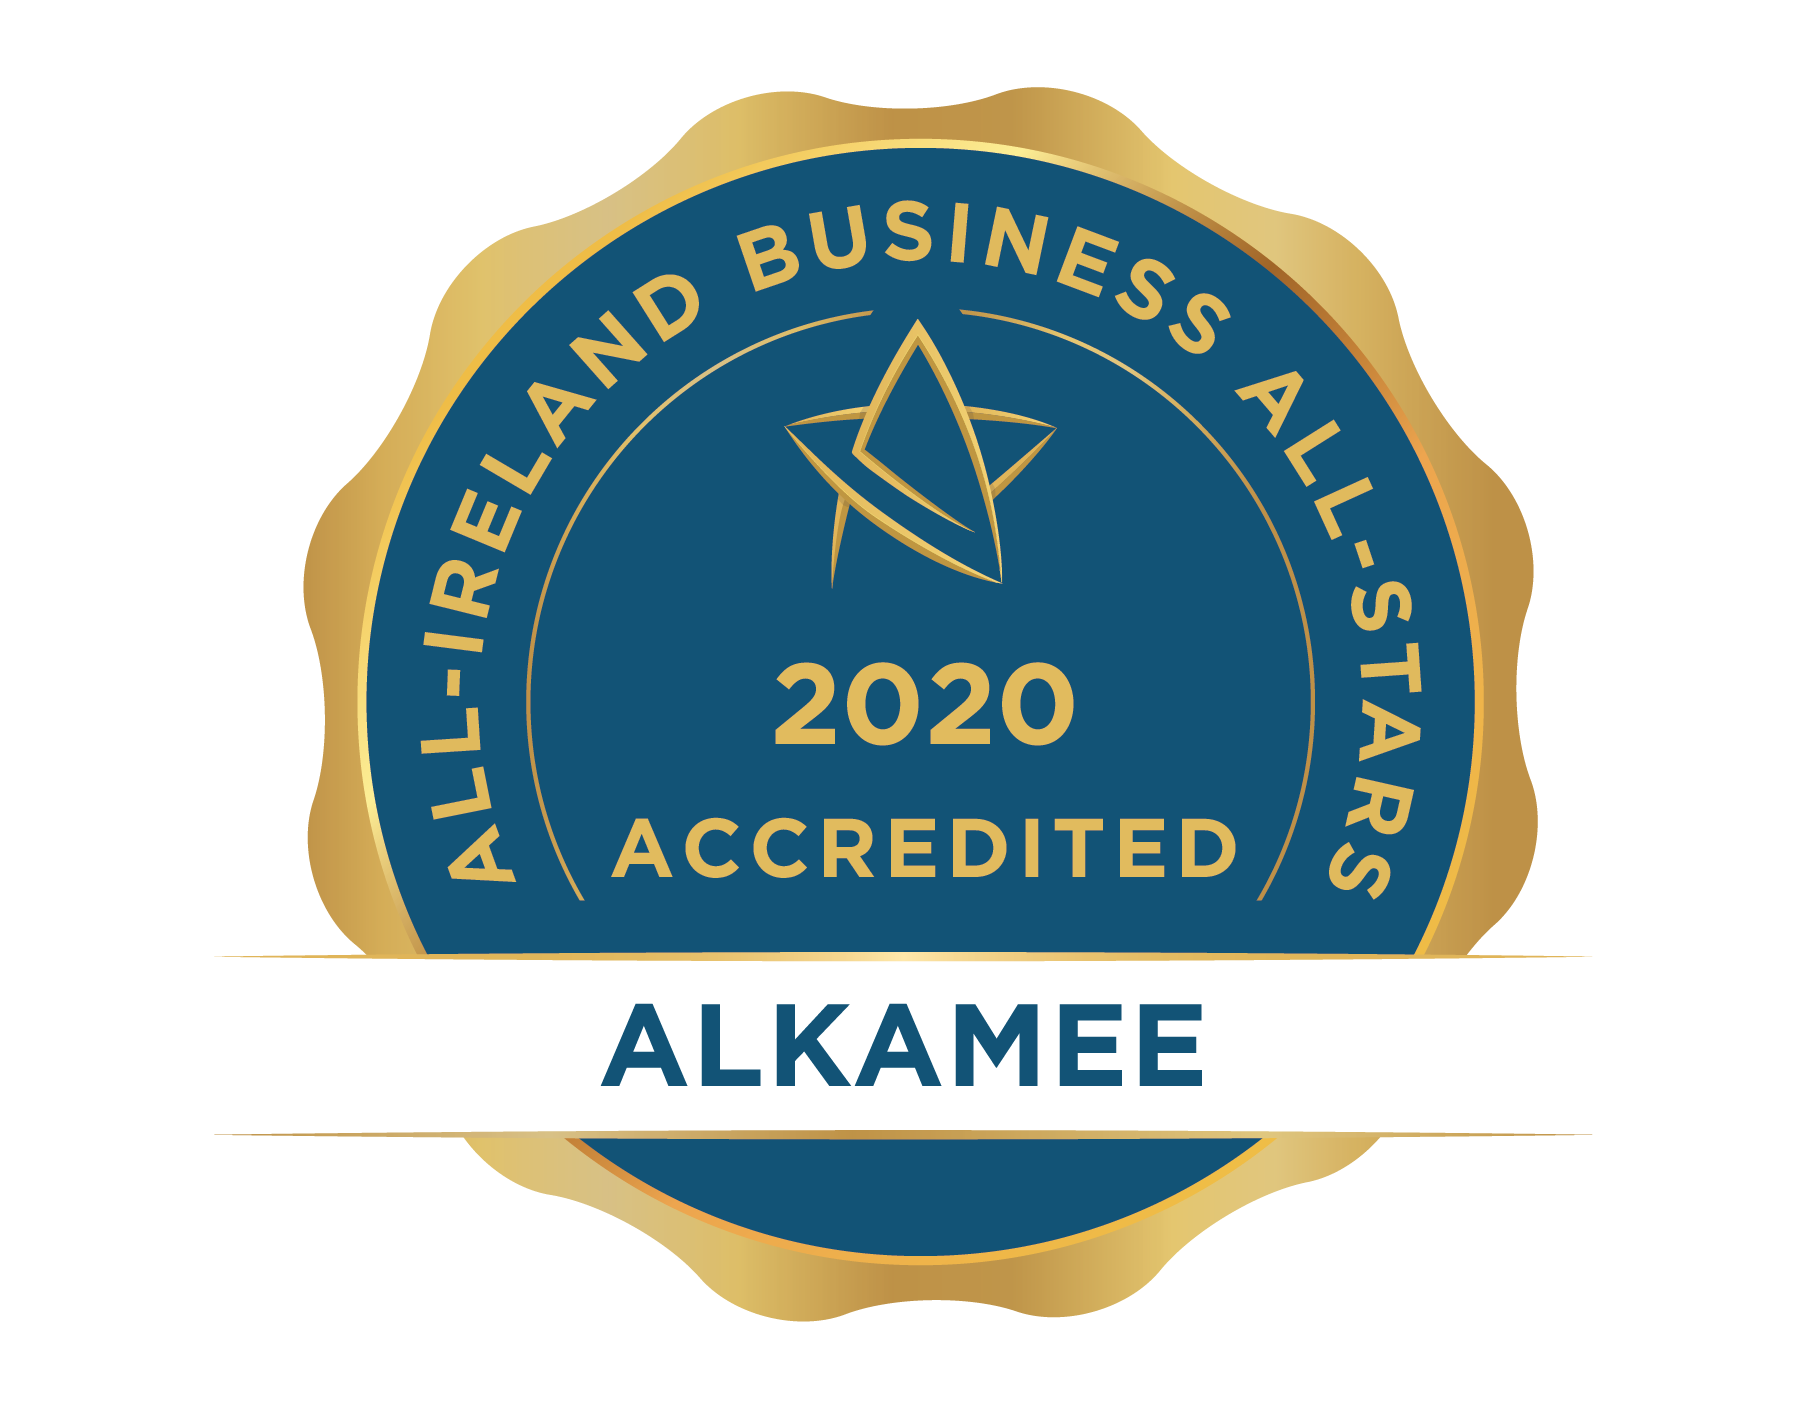 Alkamee 20  20All Ireland 20Business 20All Stars 20Accredited 20  20seal 01